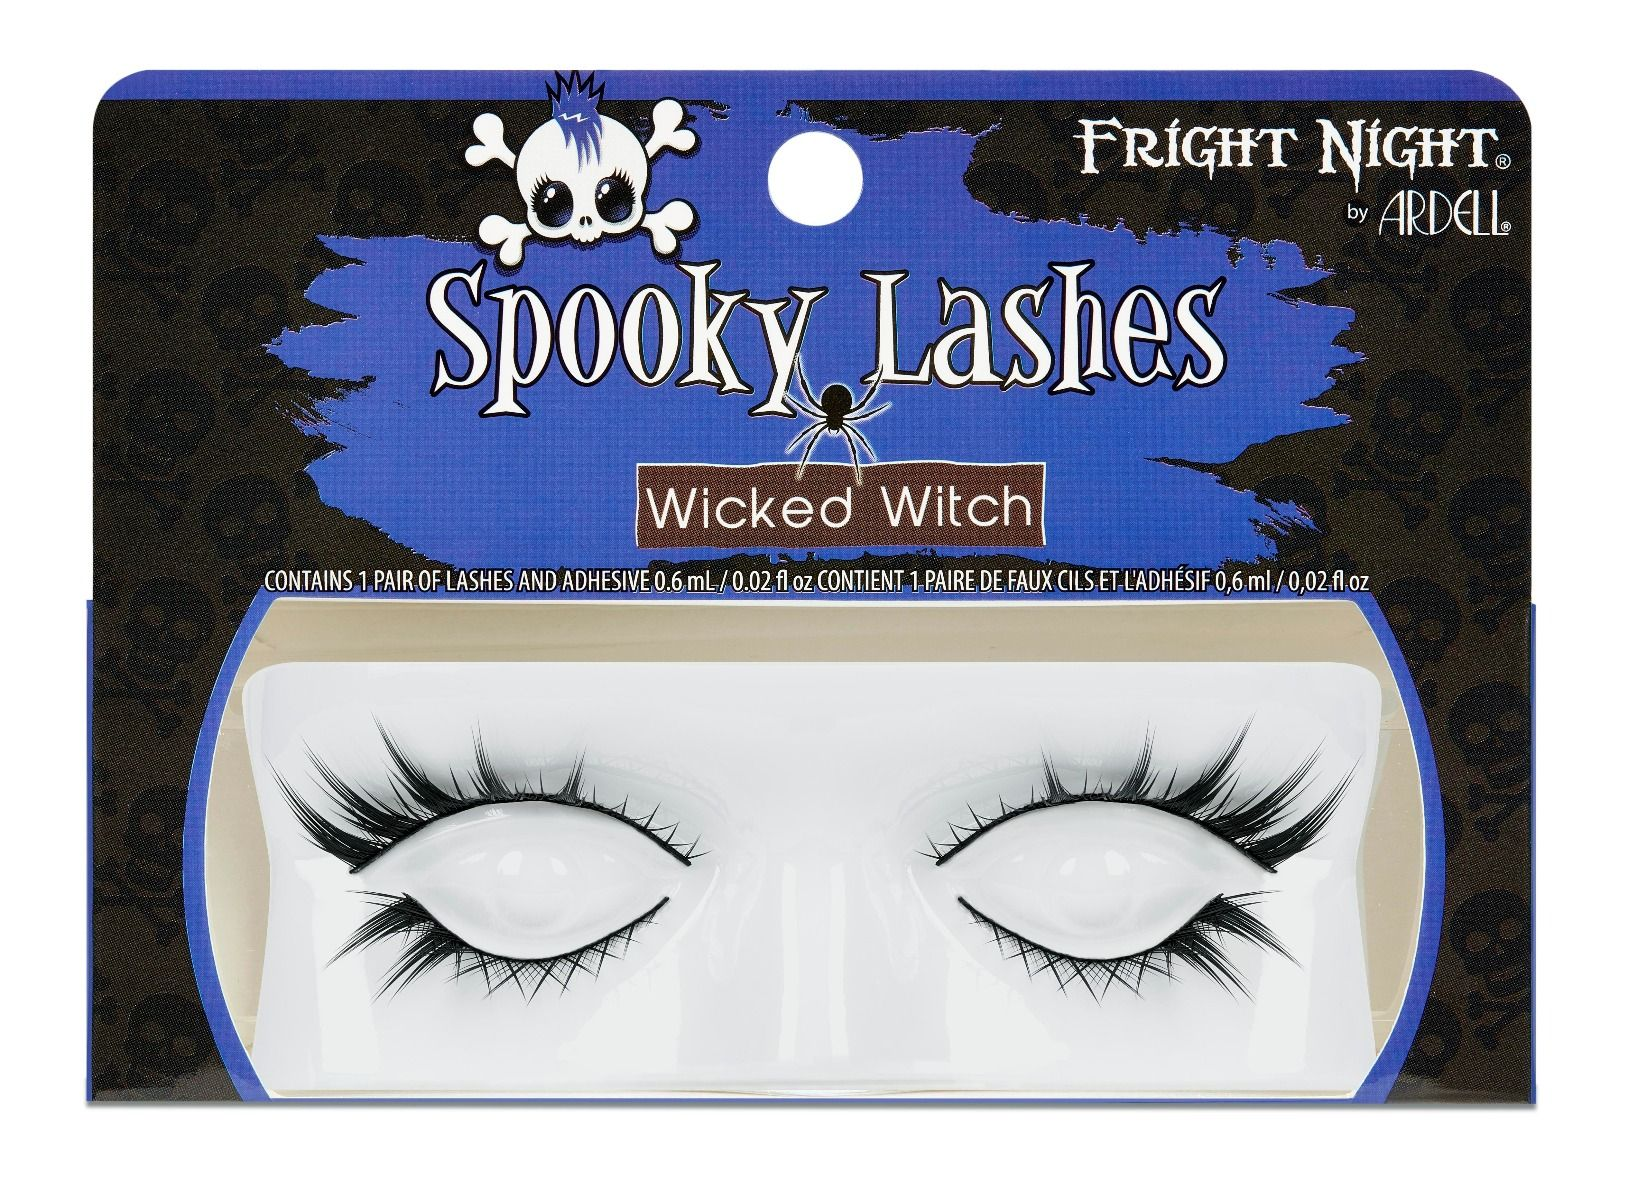 Ardell Fright Night Spooky Lashes - WICKED WITCH